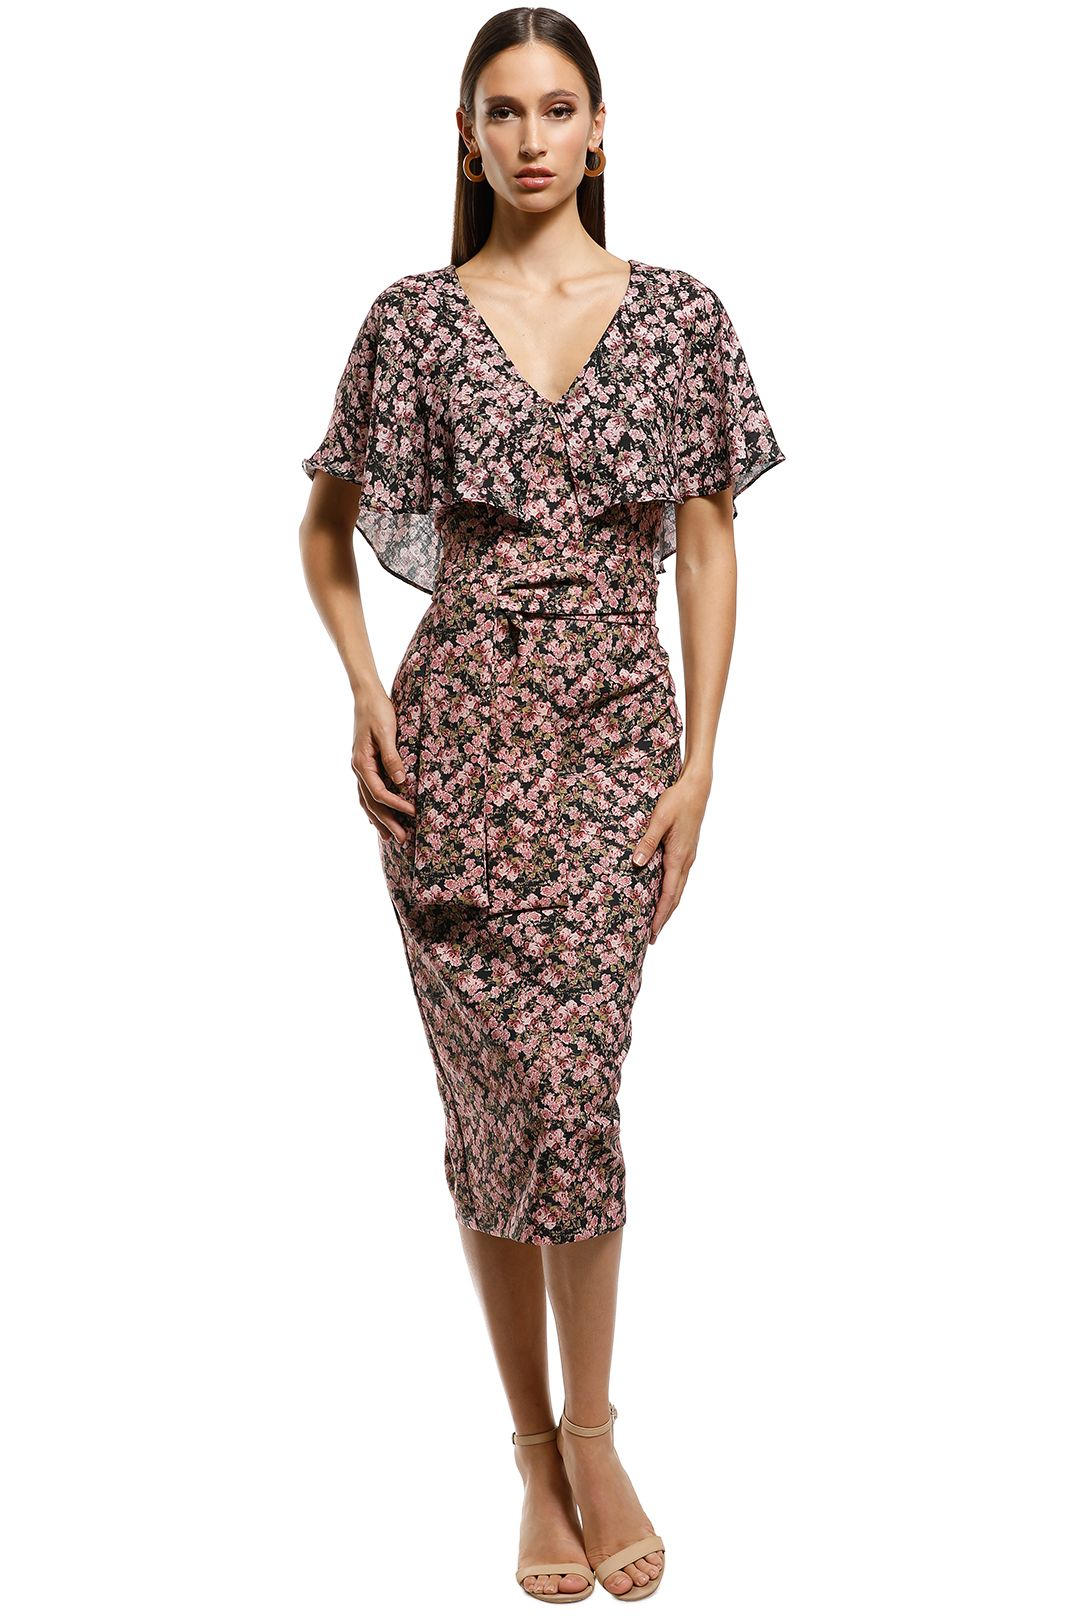 Pasduchas-Virginia Cape Midi-Blush Floral-Front